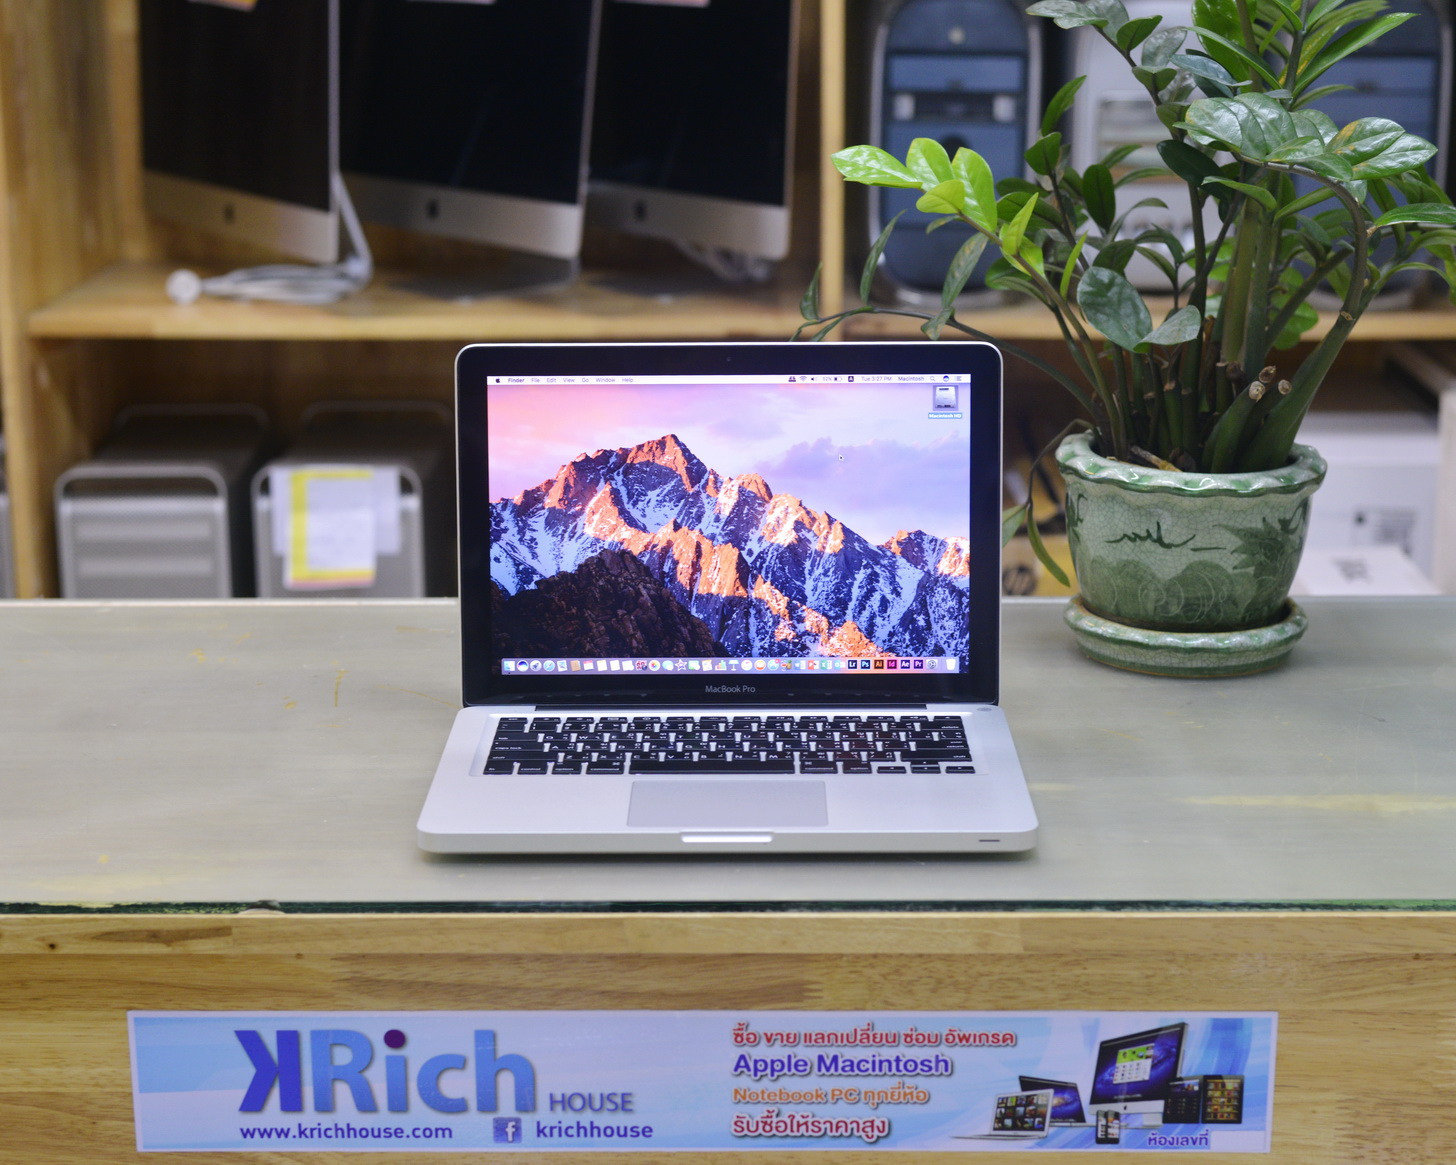 MacBook Pro (13-inch Early 2011) Core i5 2.3GHz RAM 4GB HDD 320GB